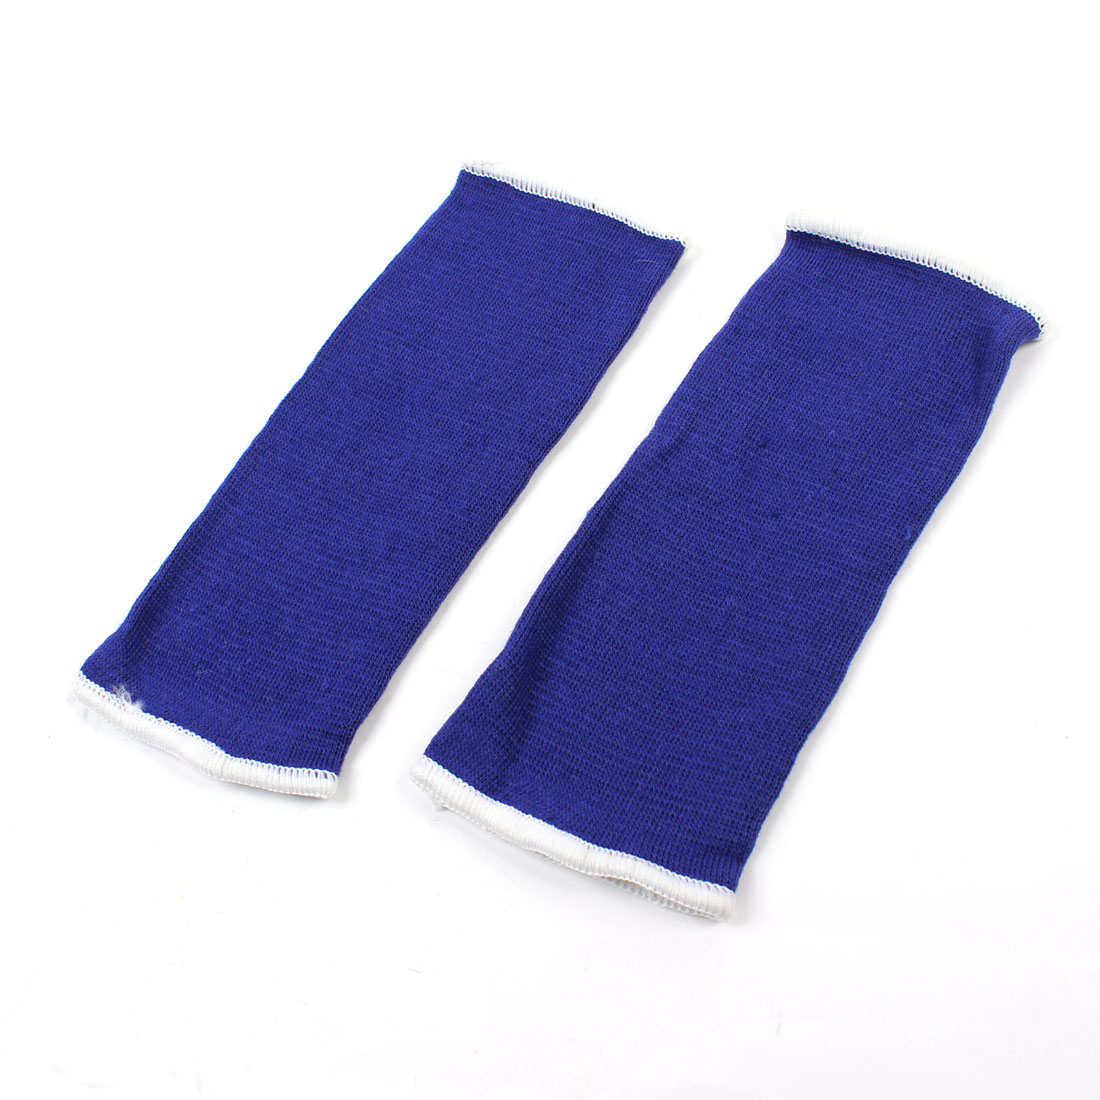 Pair White Hem Blue Stretch Knitting Breathable Elbow Sleeve Support